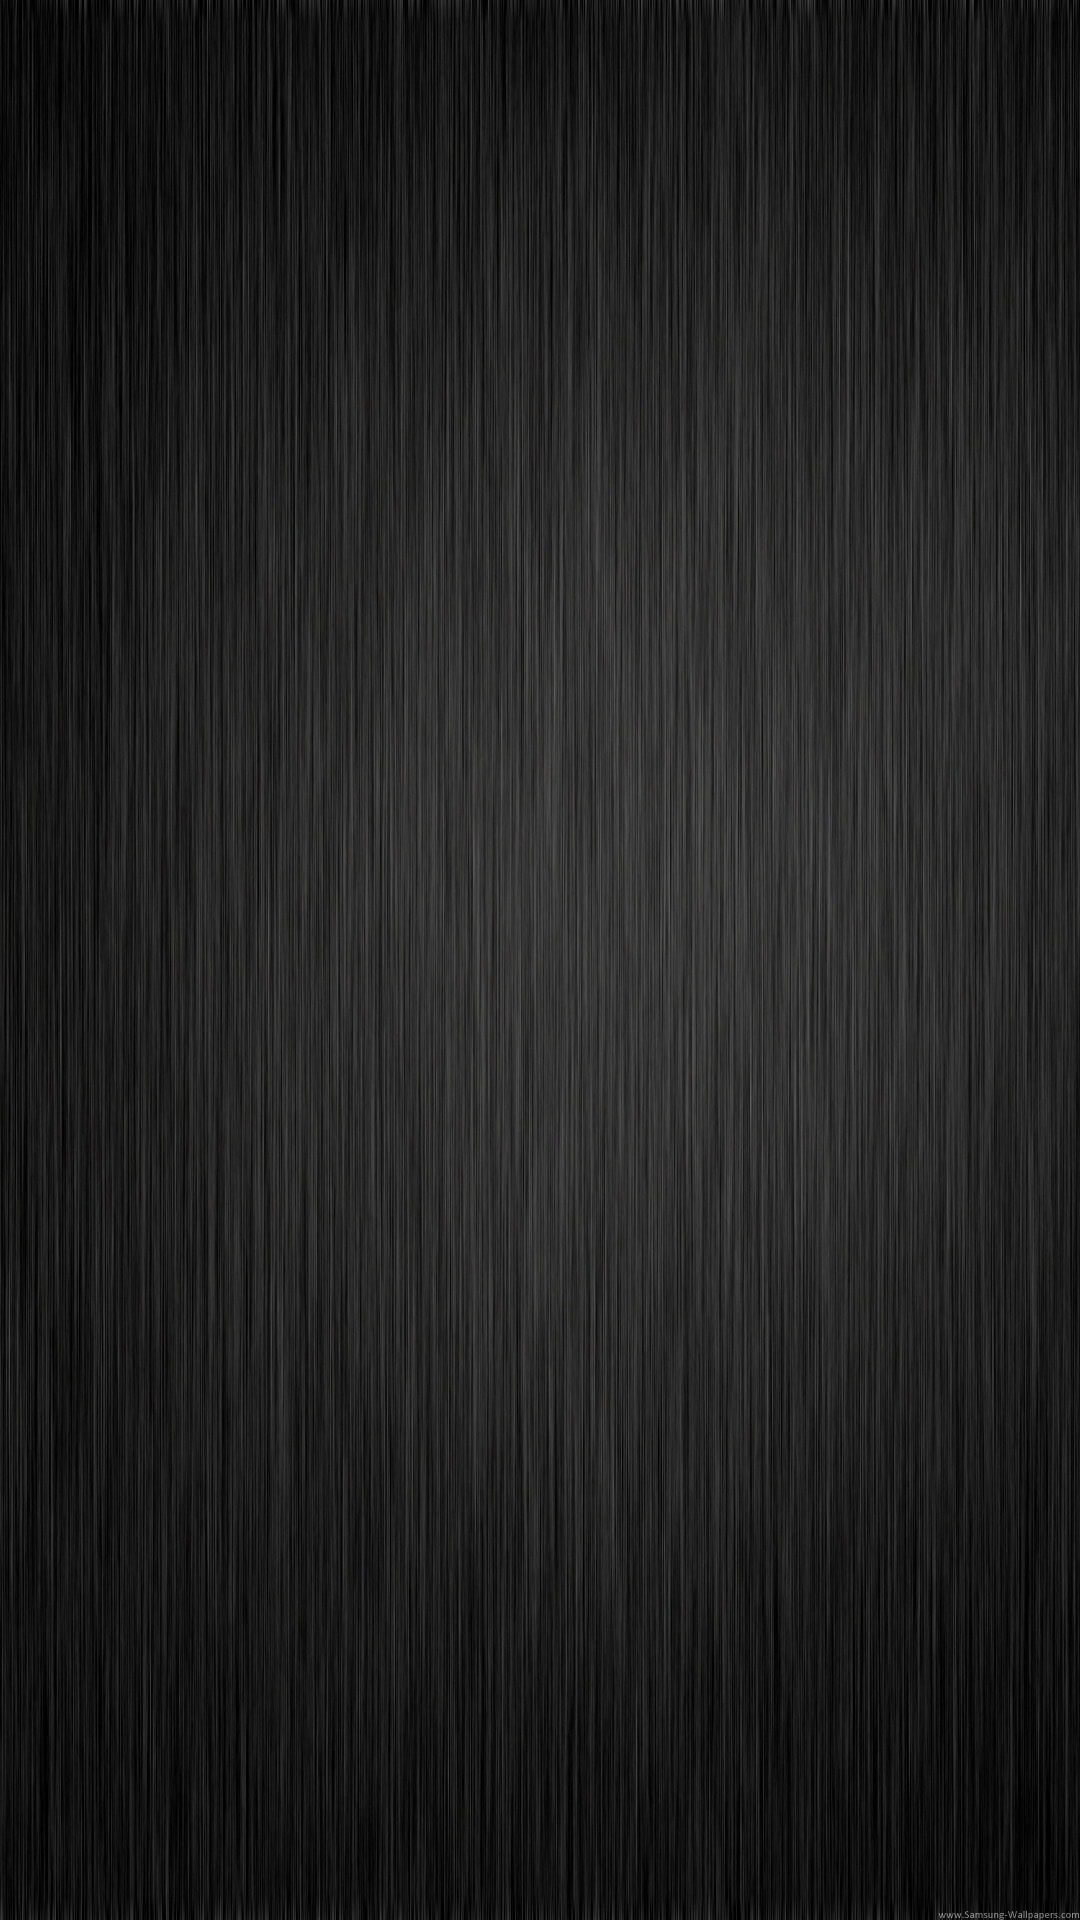 Android Wallpapers 73 images 1080x1920